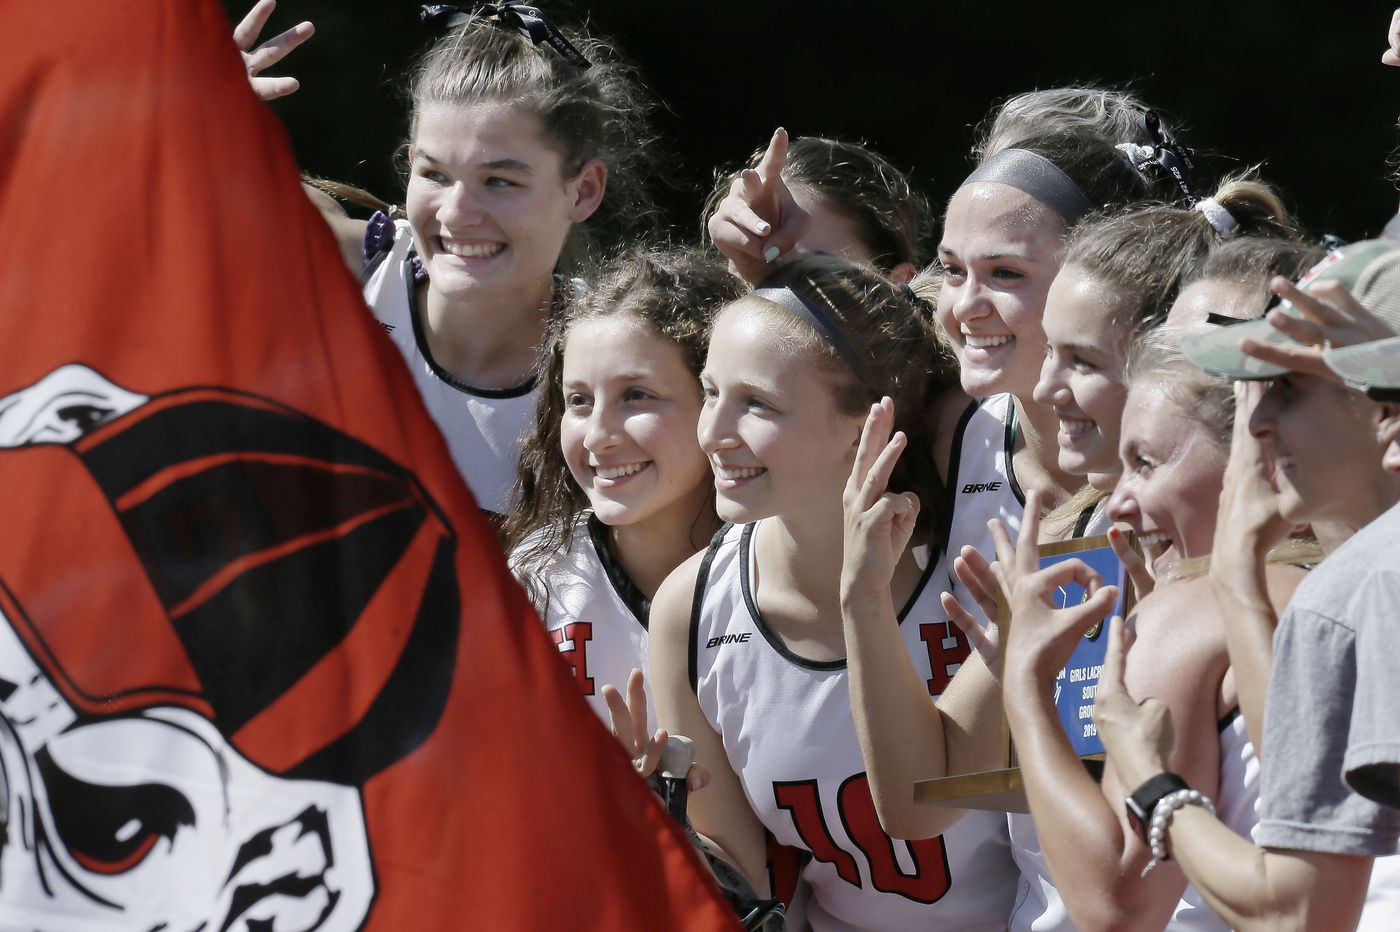 Friday's South Jersey roundup: Haddonfield girls' lacrosse downs Camden Catholic for third straight South Group 2 sectional title